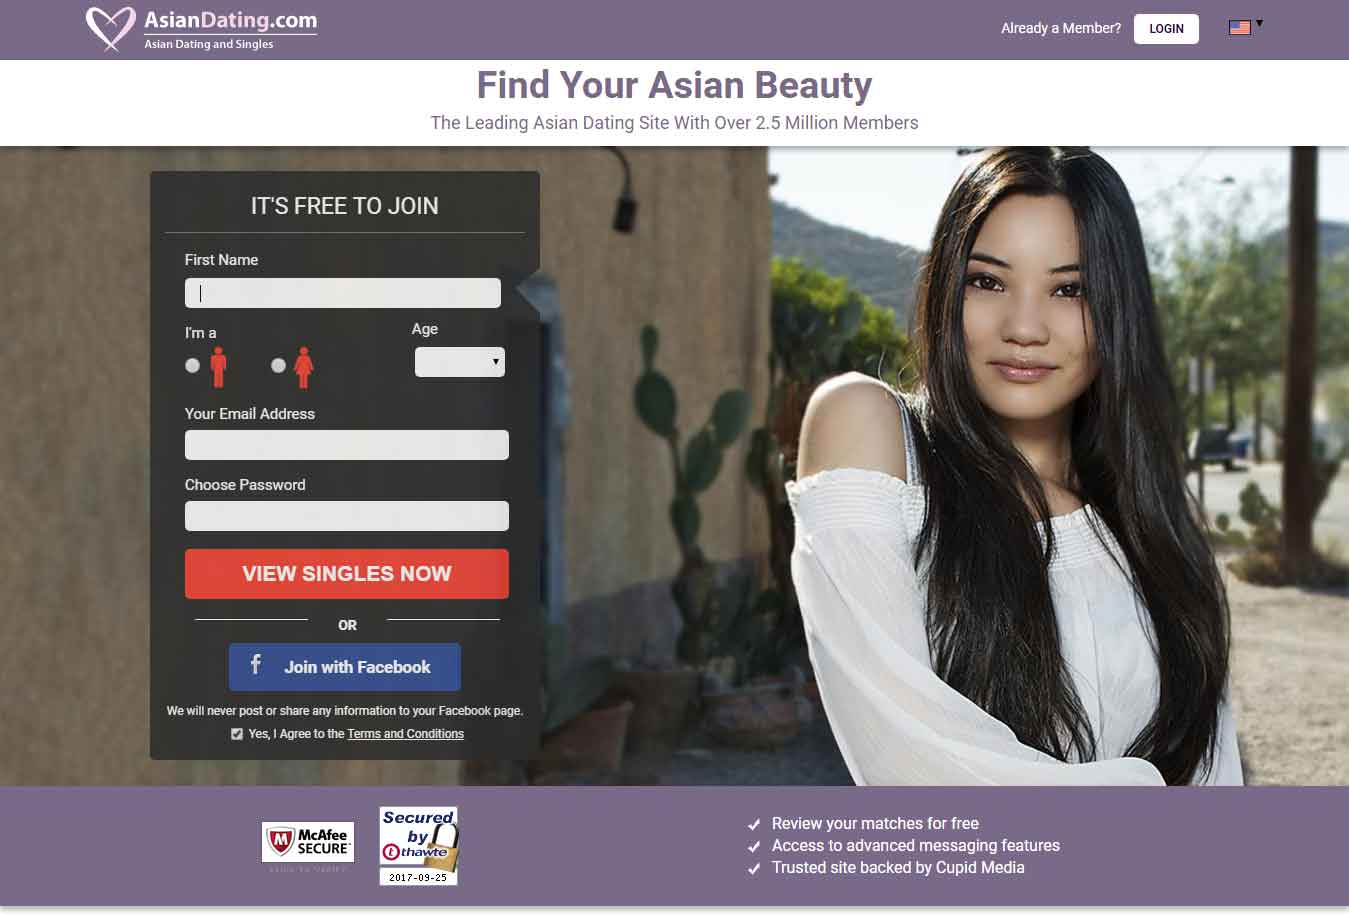 Asian Interracial Date | Asian Interracial Dating Site